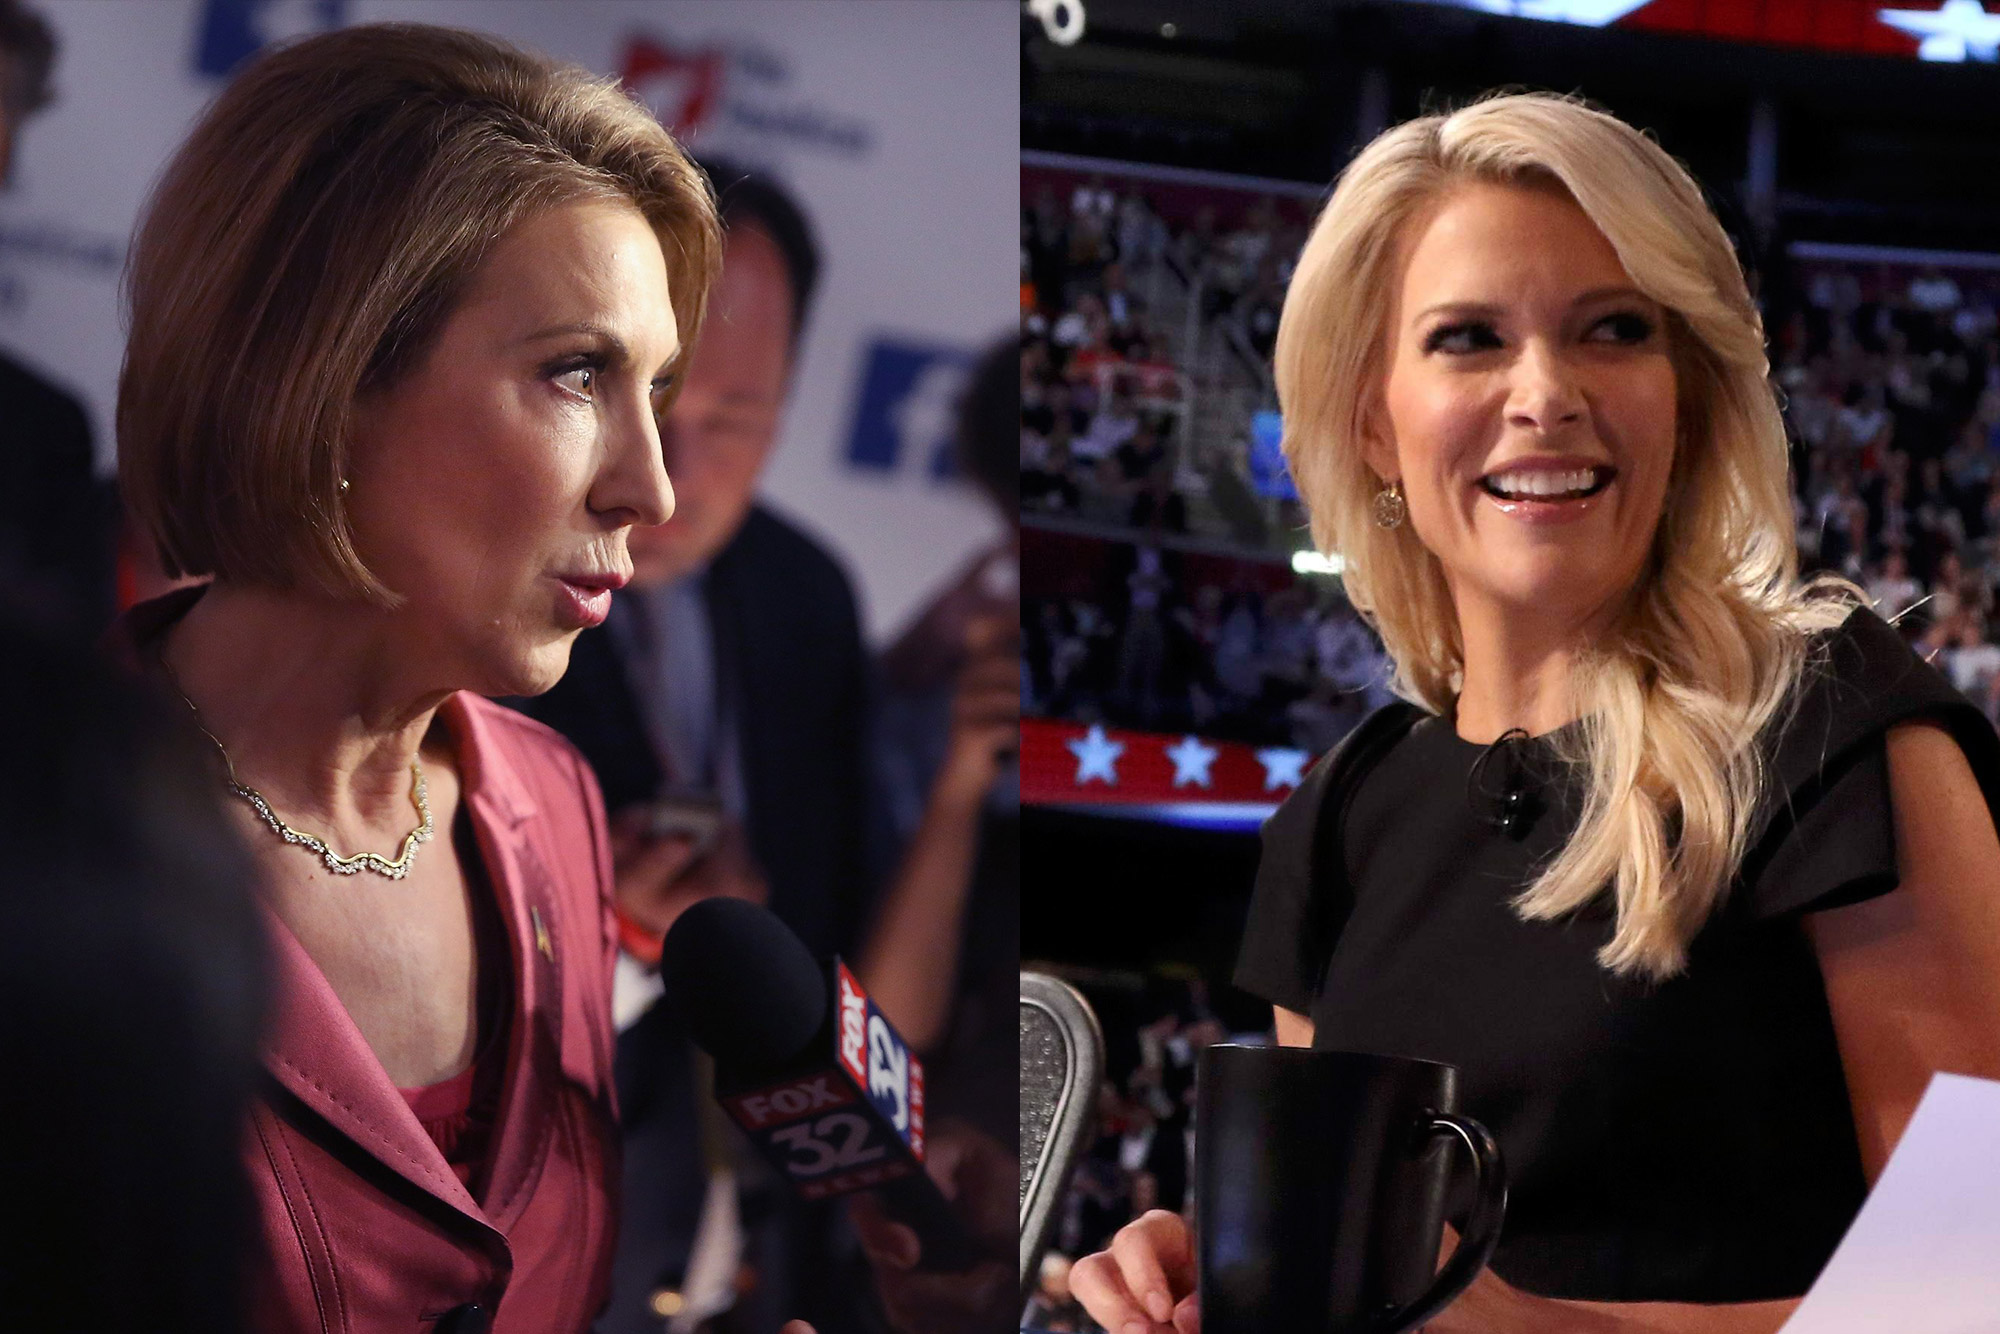 Carly Fiorina and Megyn Kelly on Aug. 6, 2015.